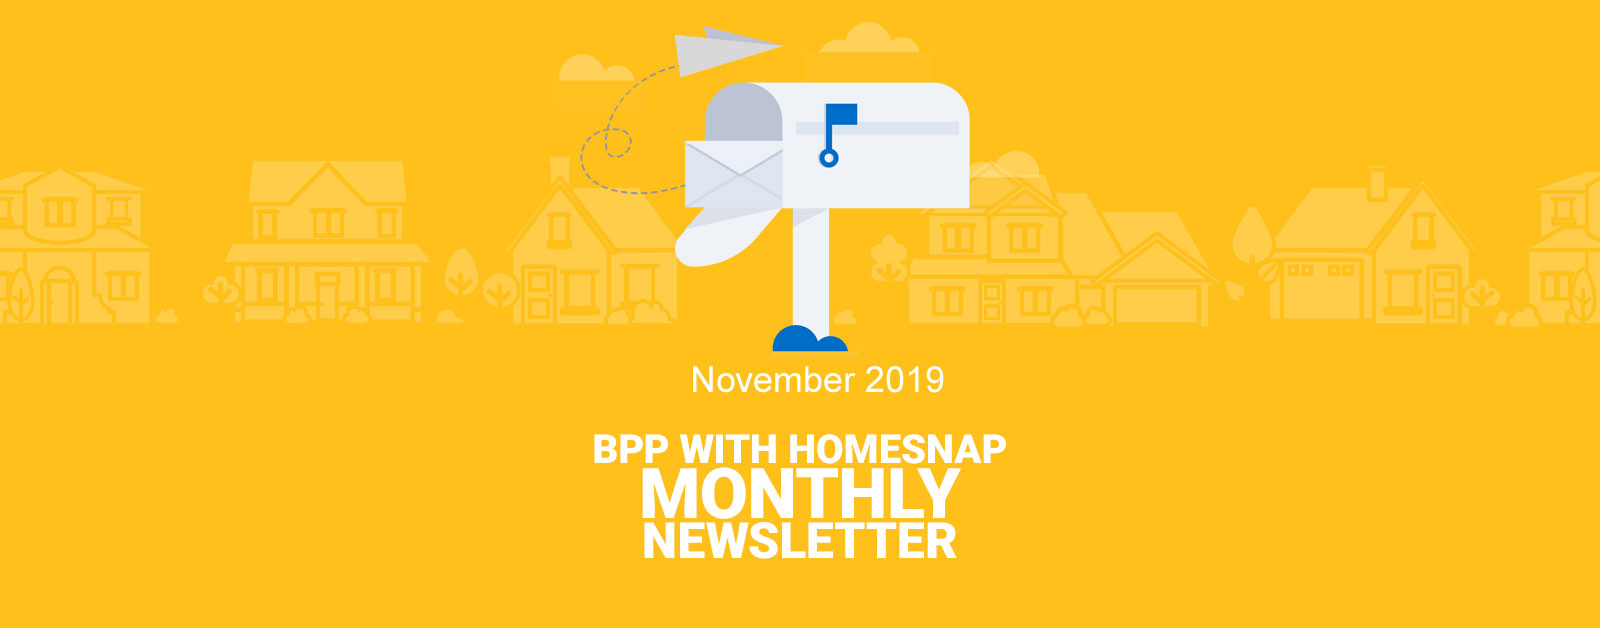 BPP Nov Newsletter